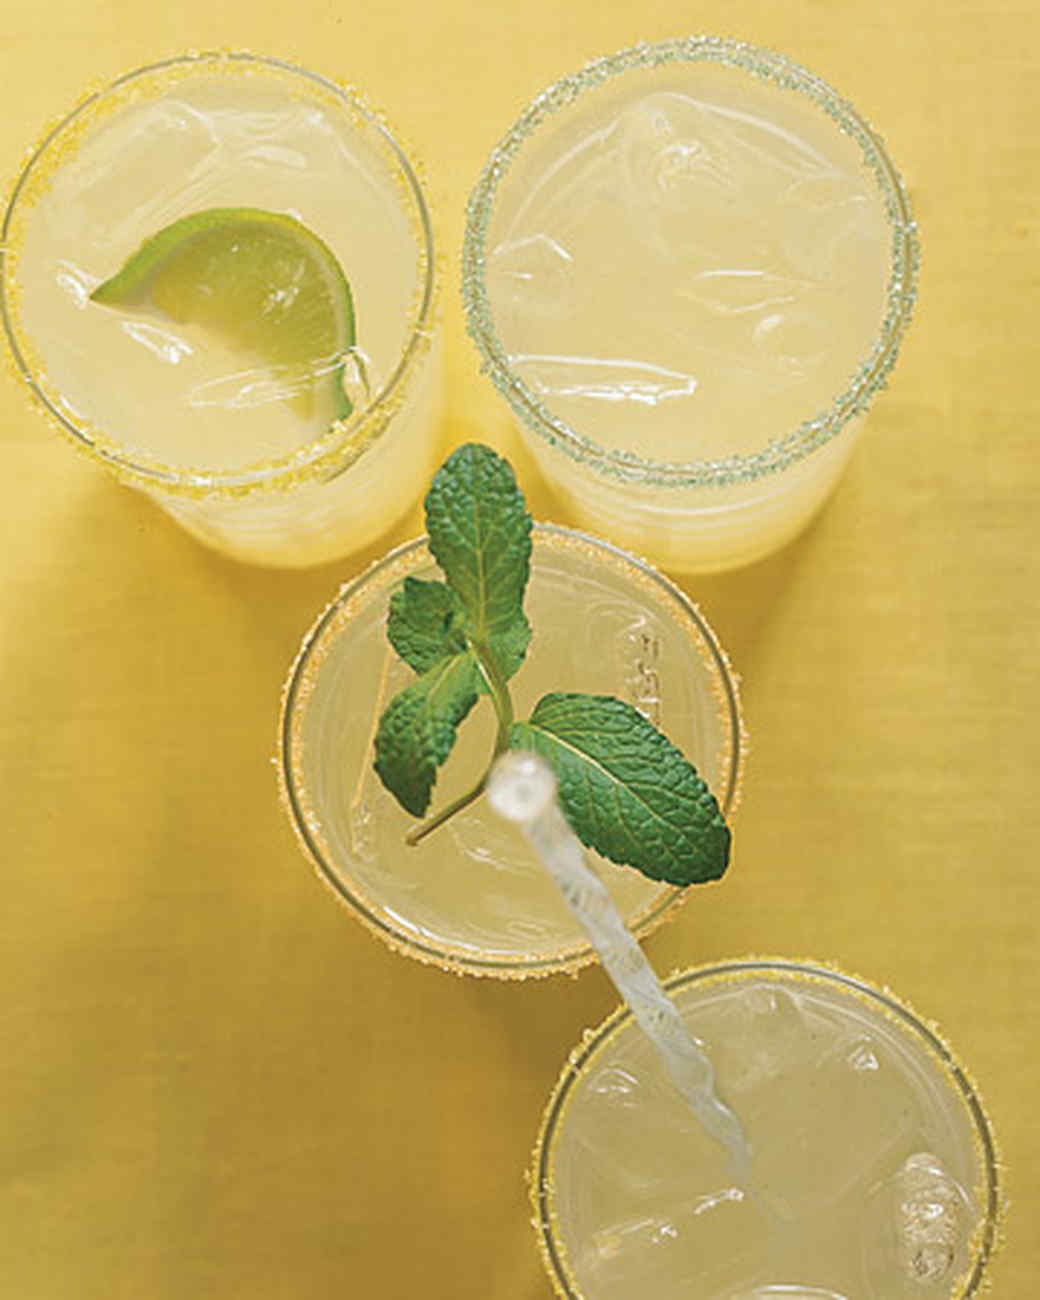 ml809S15_sip08_mojitos.jpg